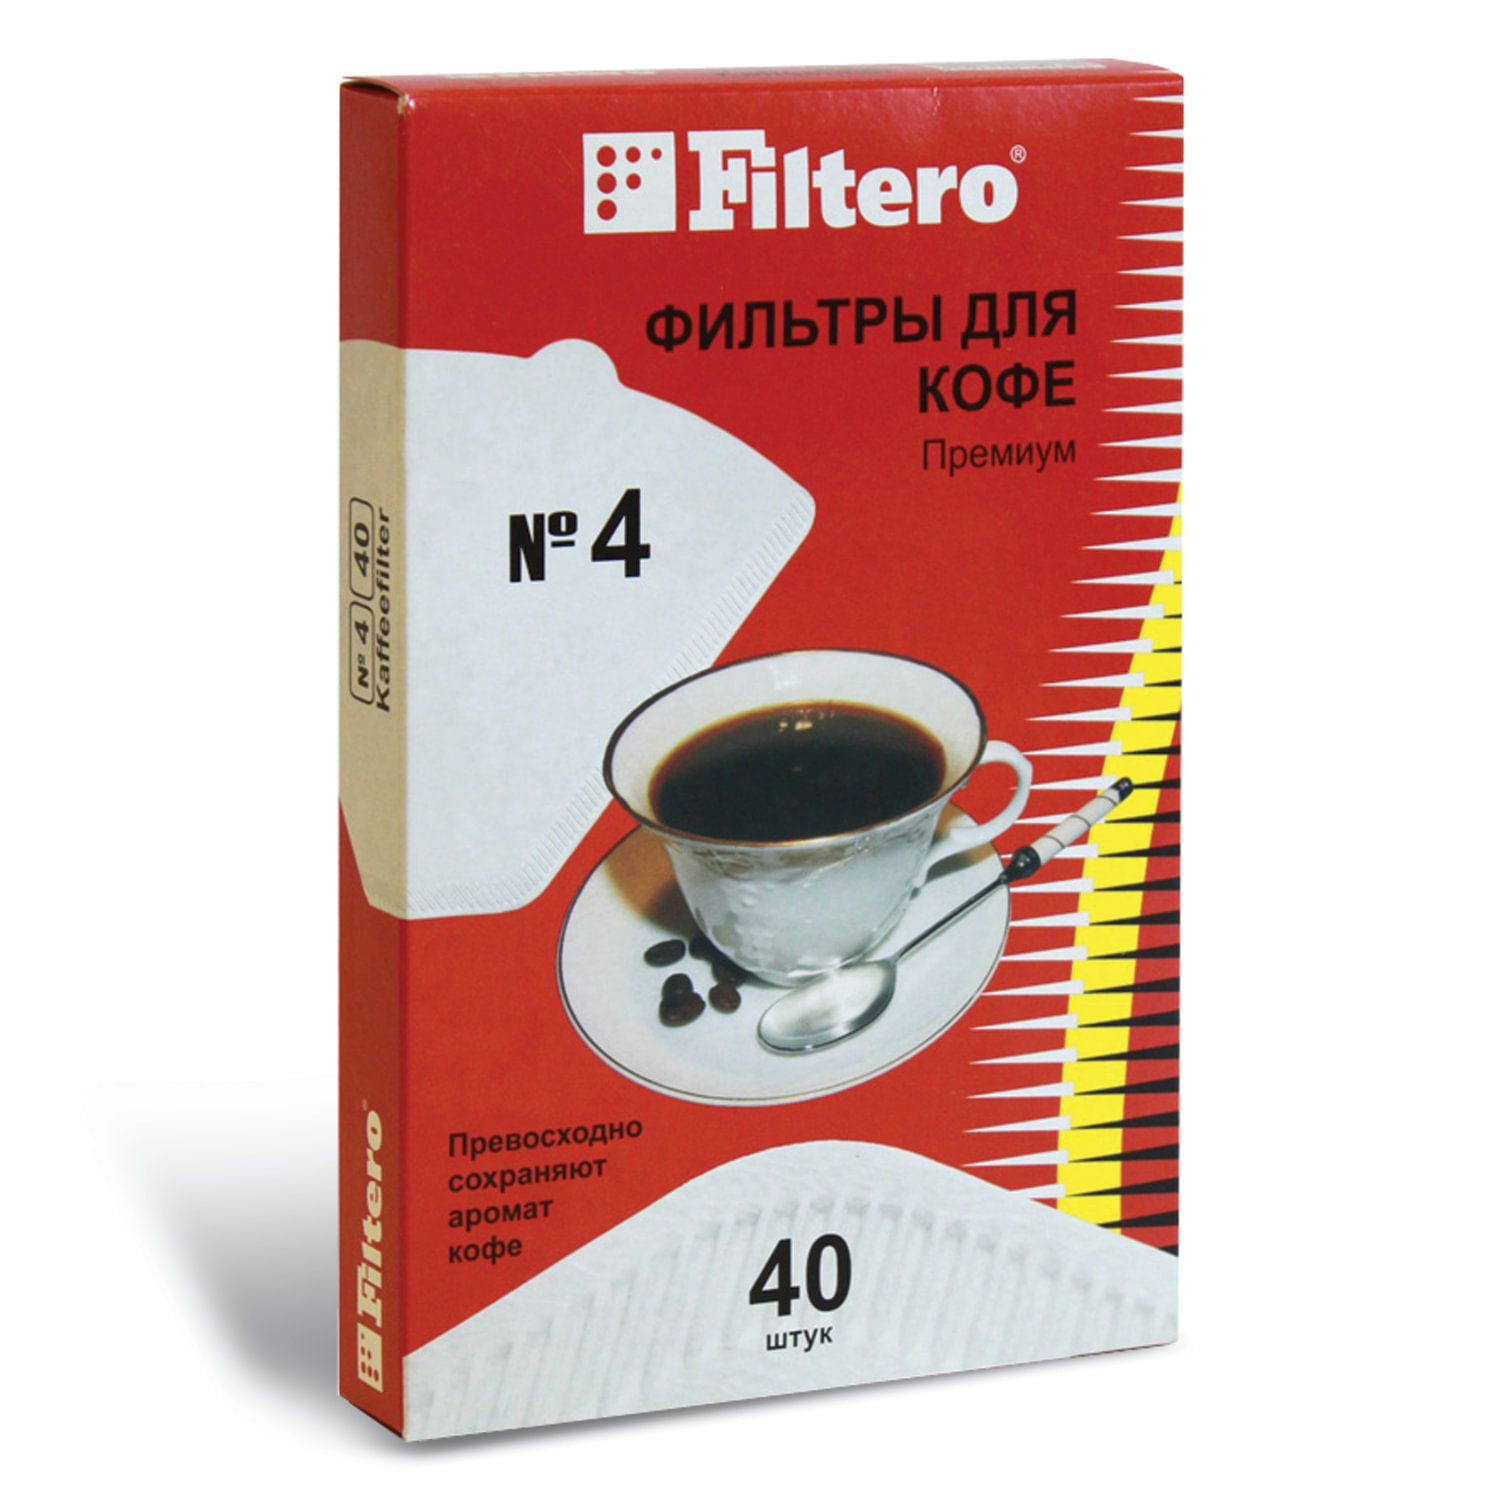 FILTERO PREMIUM No.4 filter for coffee makers, paper, bleached, 40 pieces